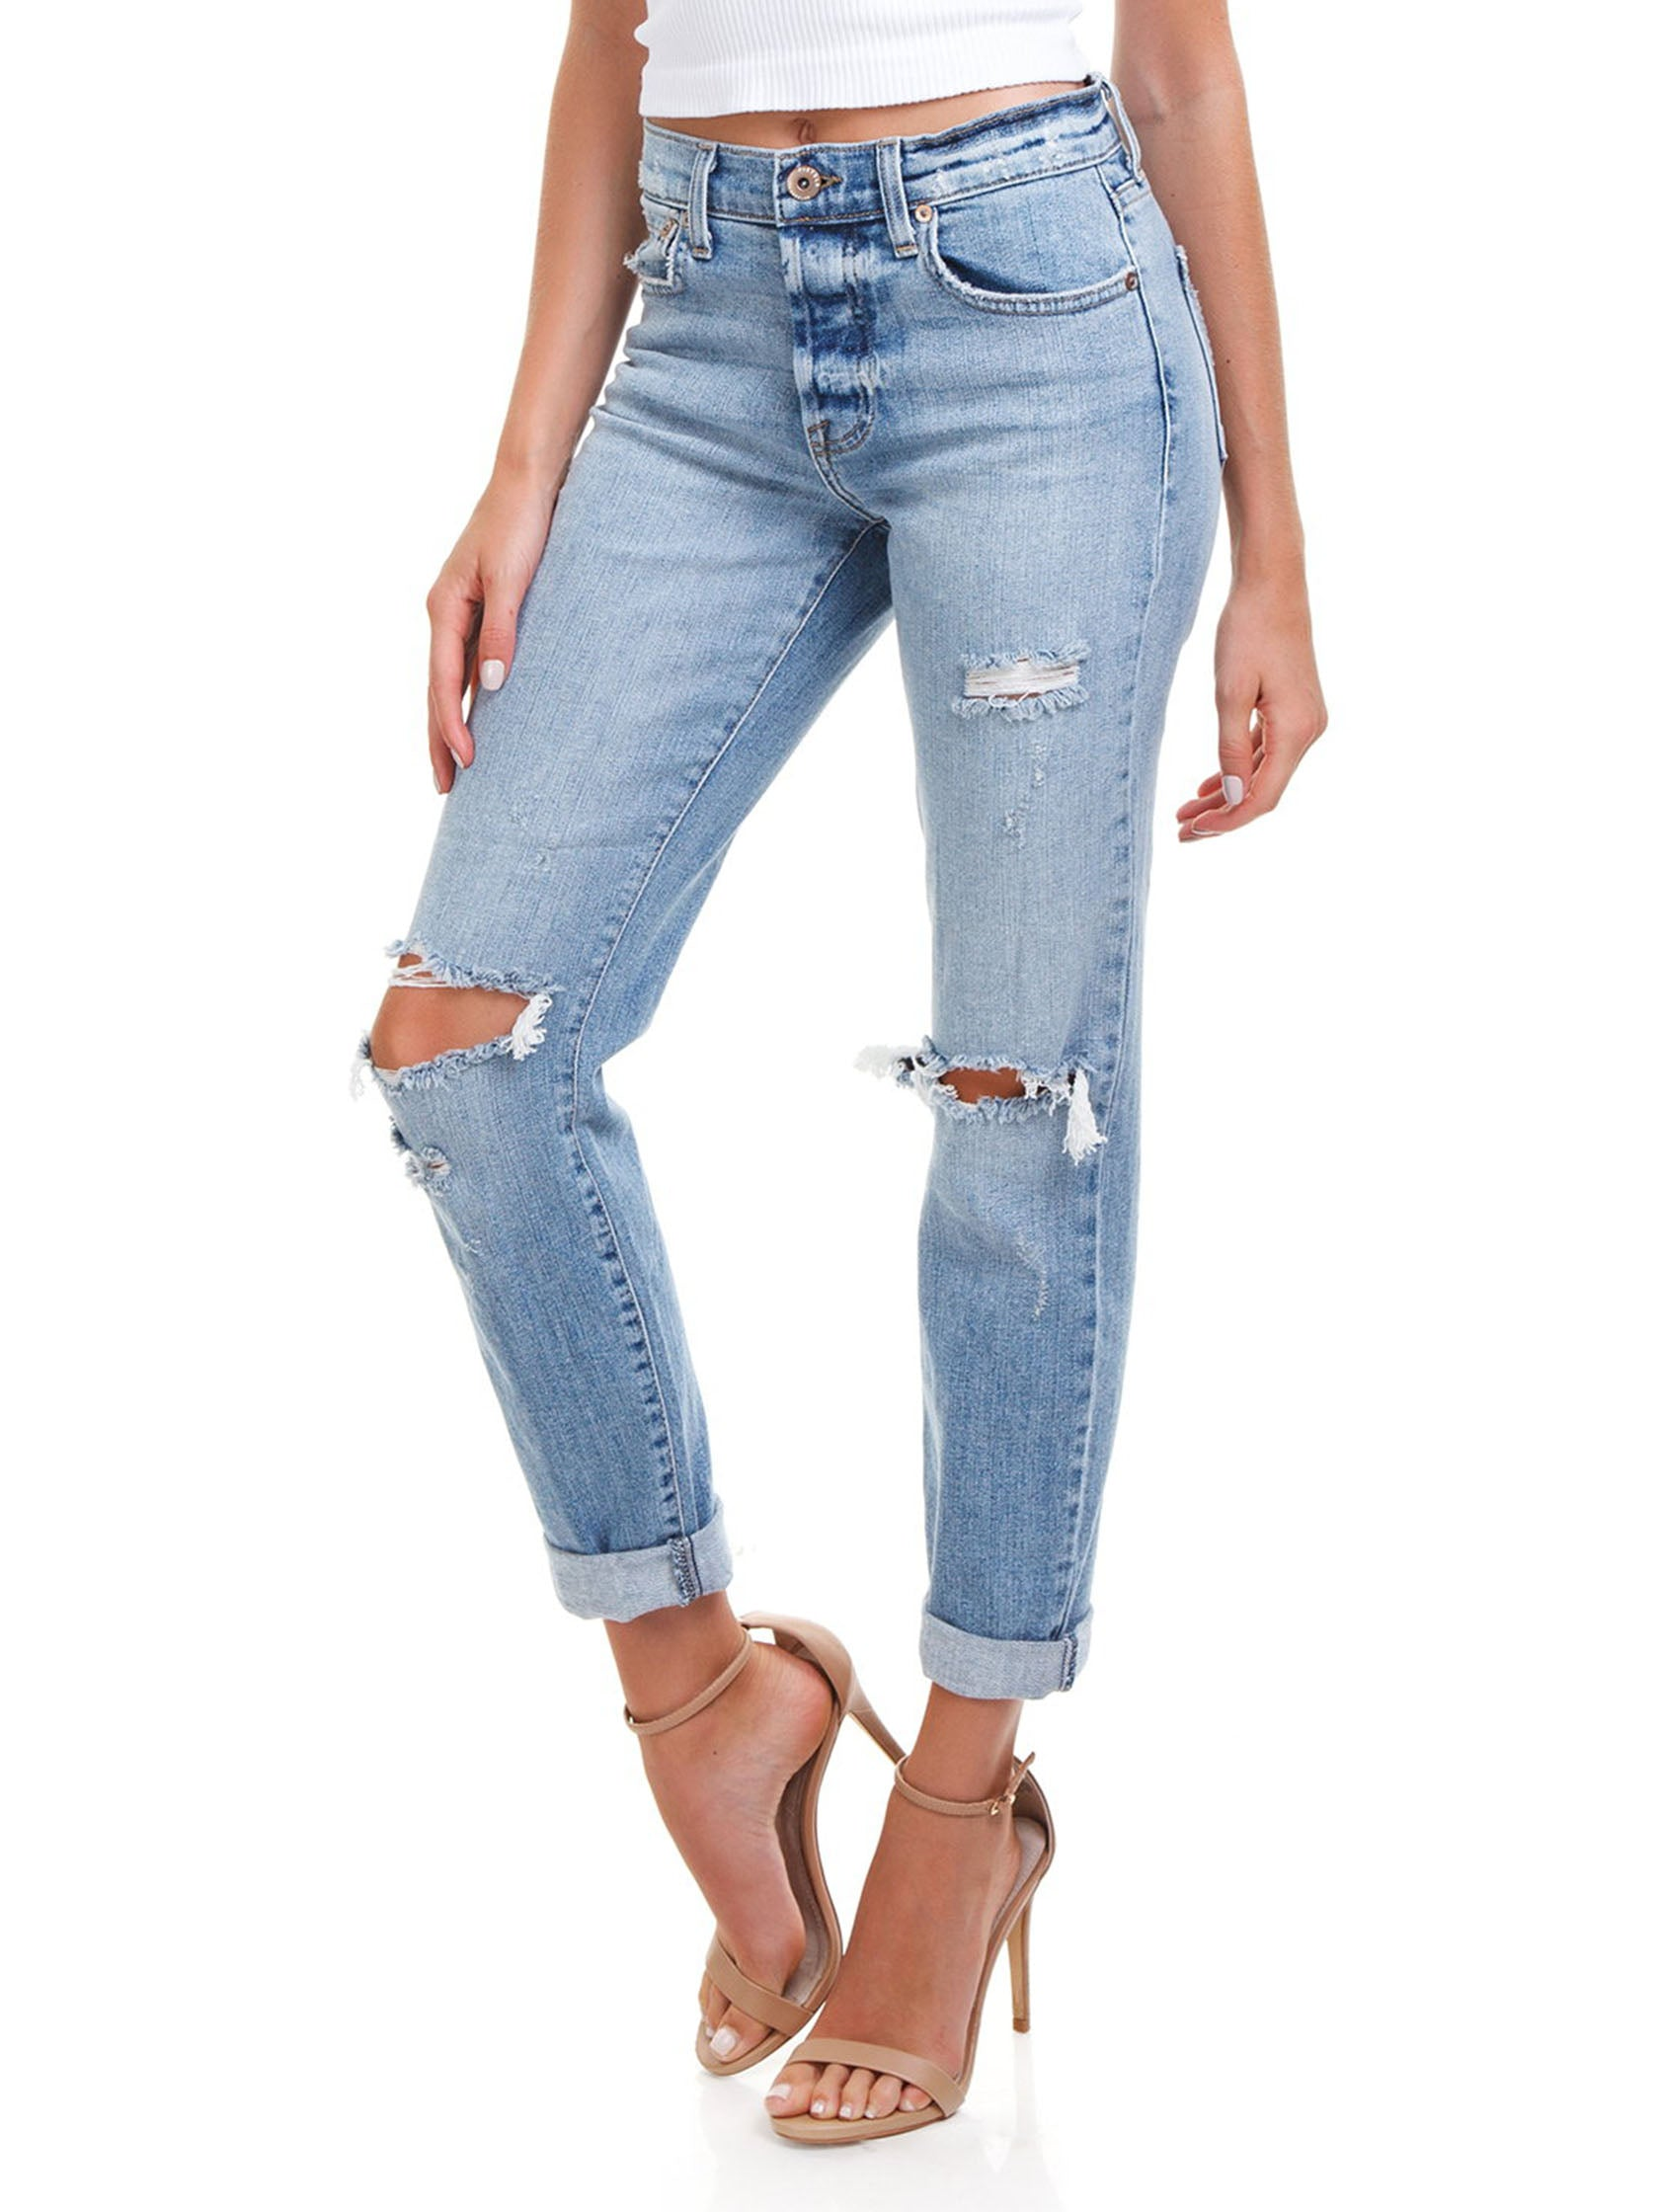 Women wearing a denim rental from PISTOLA called Presley High Rise Girlfriend Jeans